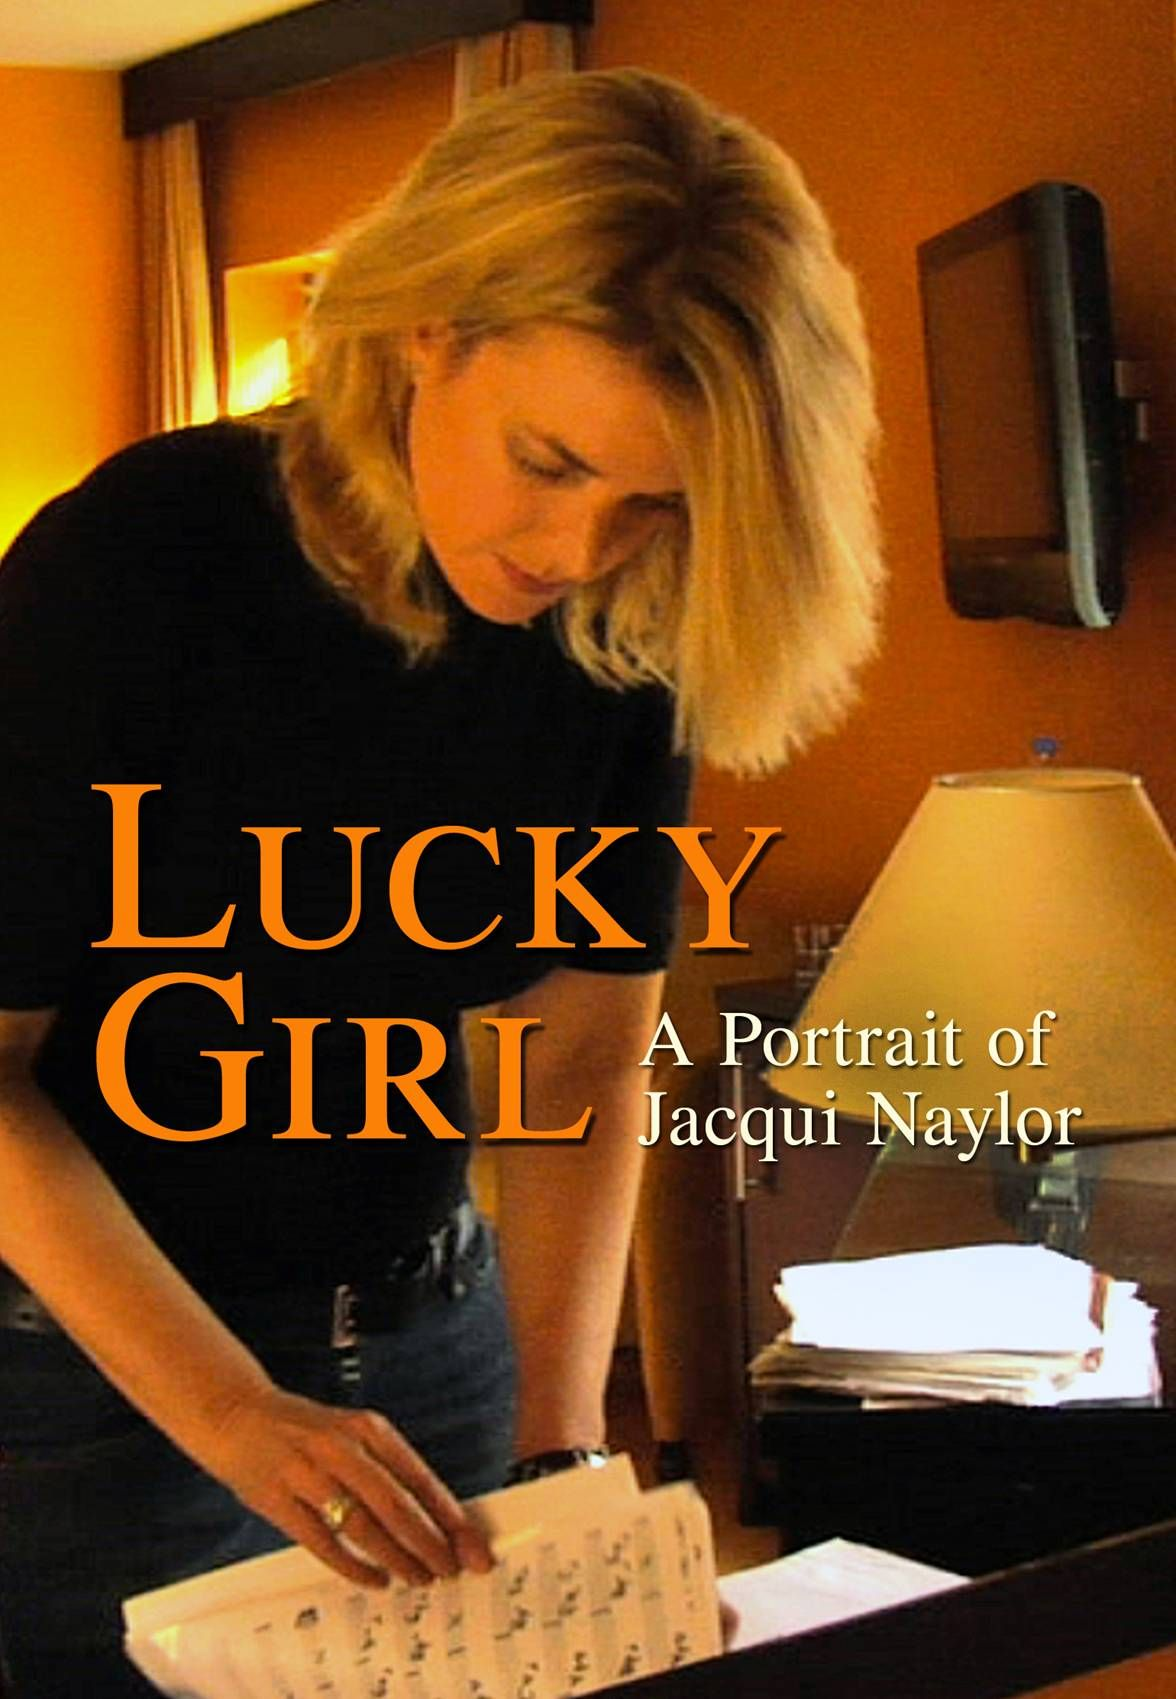 Lucky Girl: A Portrait of Jacqui Naylor